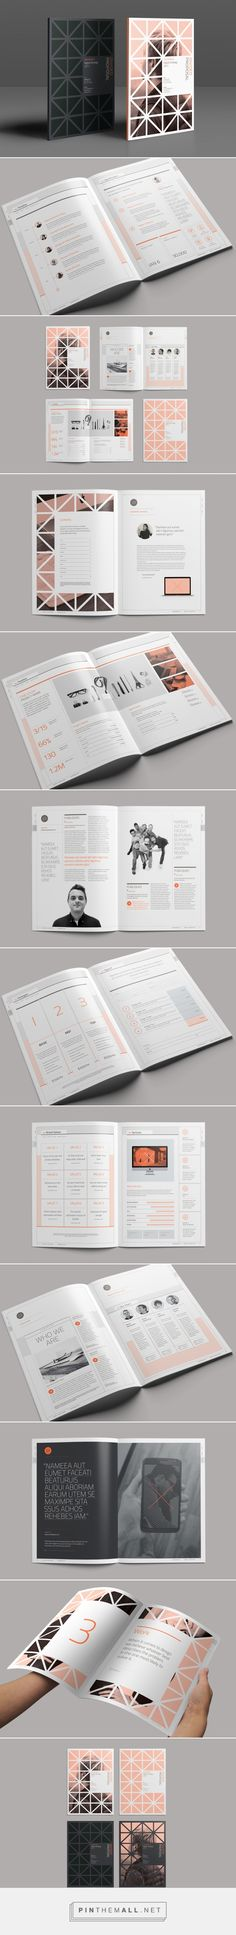 Divided Proposal on Behance - created on 2015-10-22 11:13:29